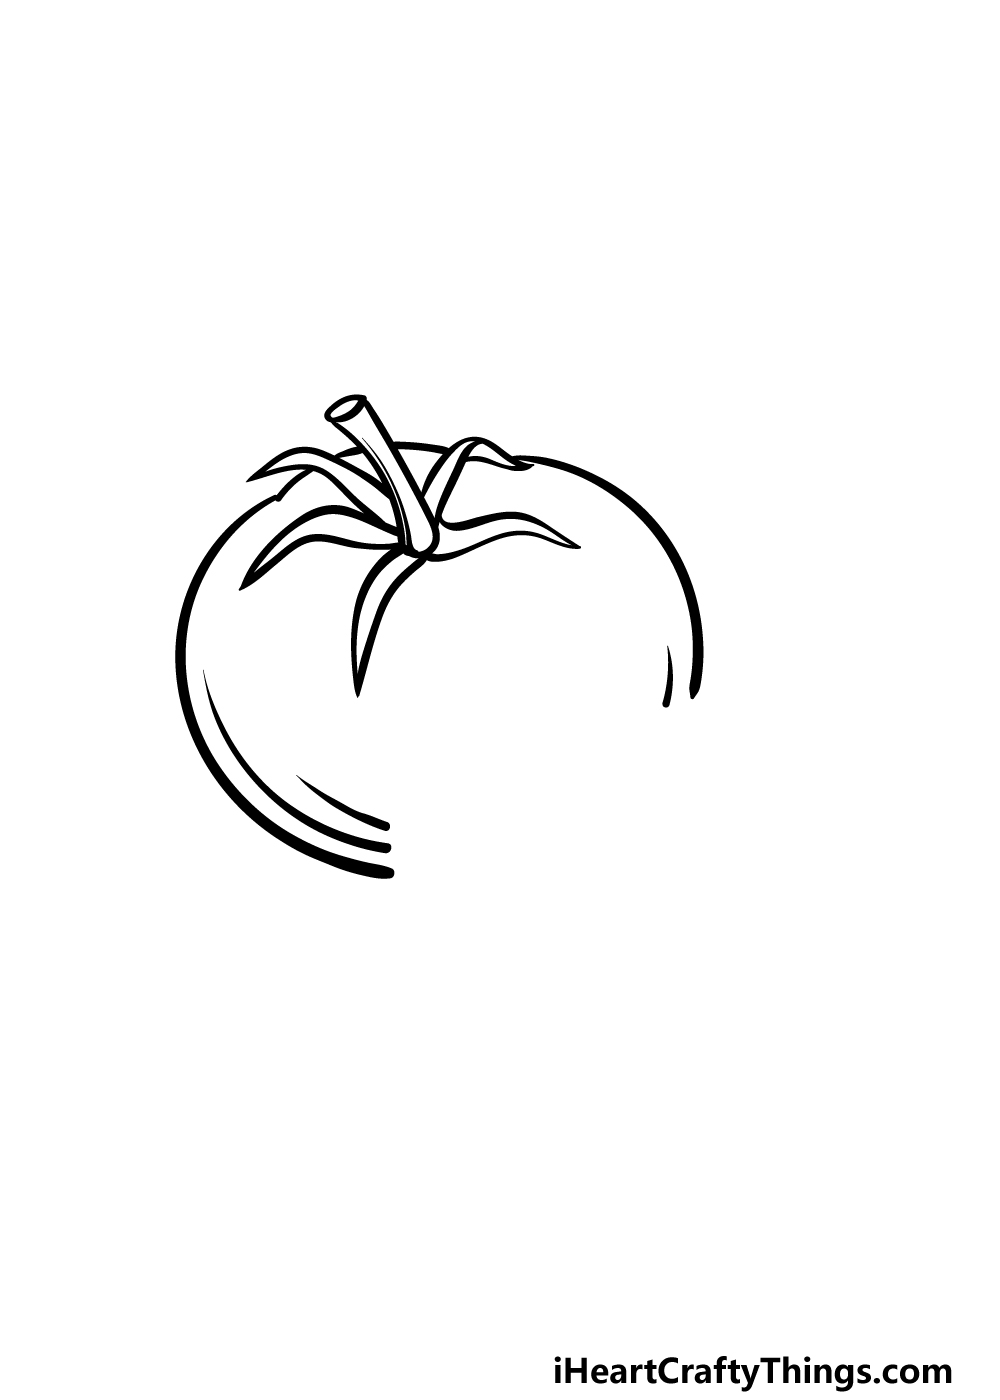 drawing a tomato step 2